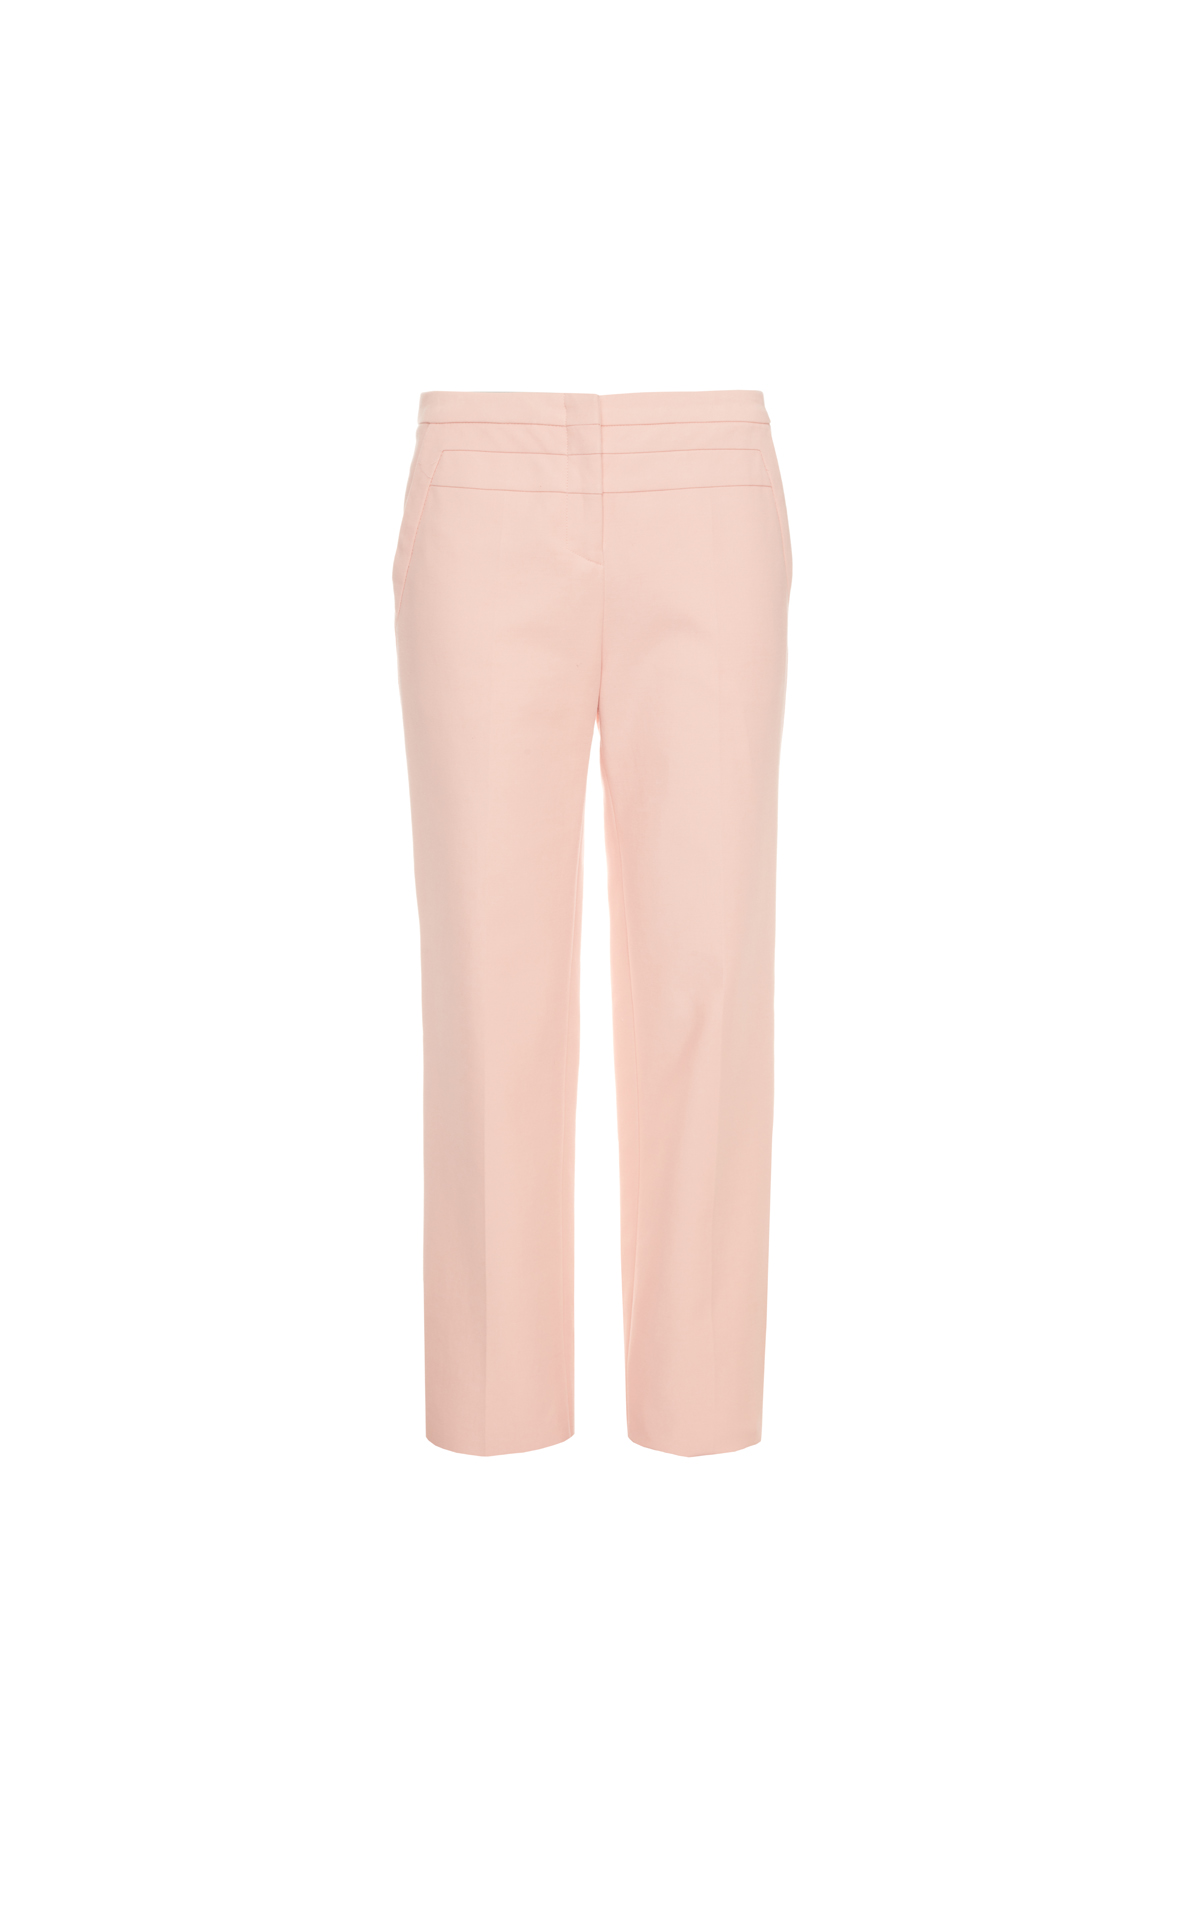 Bash Winnie trousers from Bicester Village